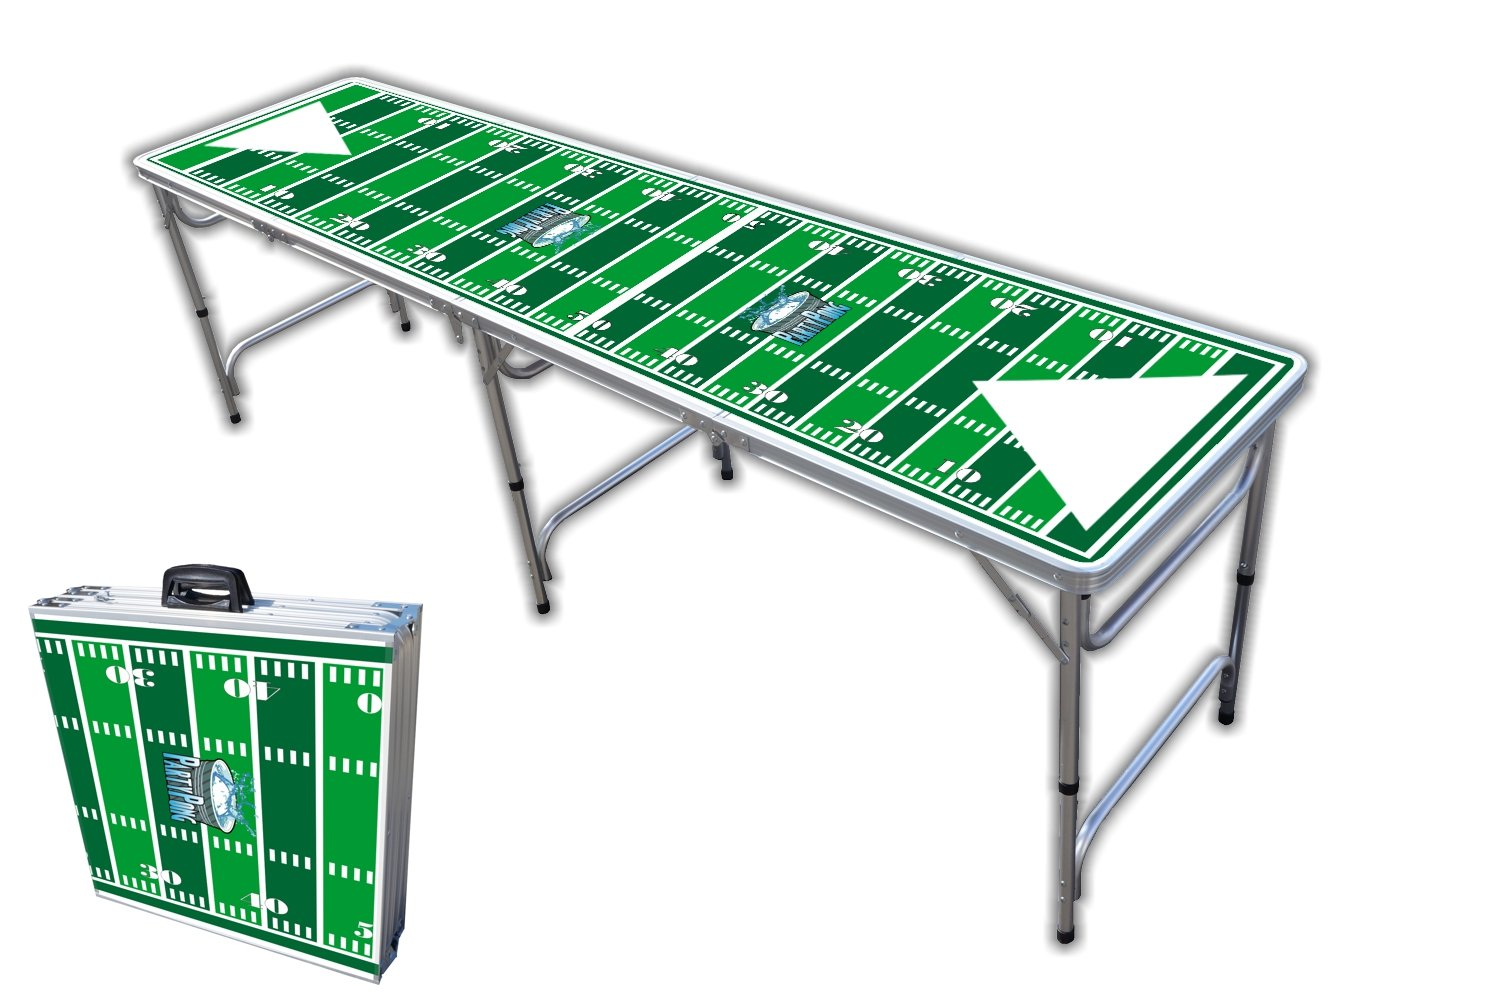 8-Foot Professional Beer Pong Table - Football Field Graphic